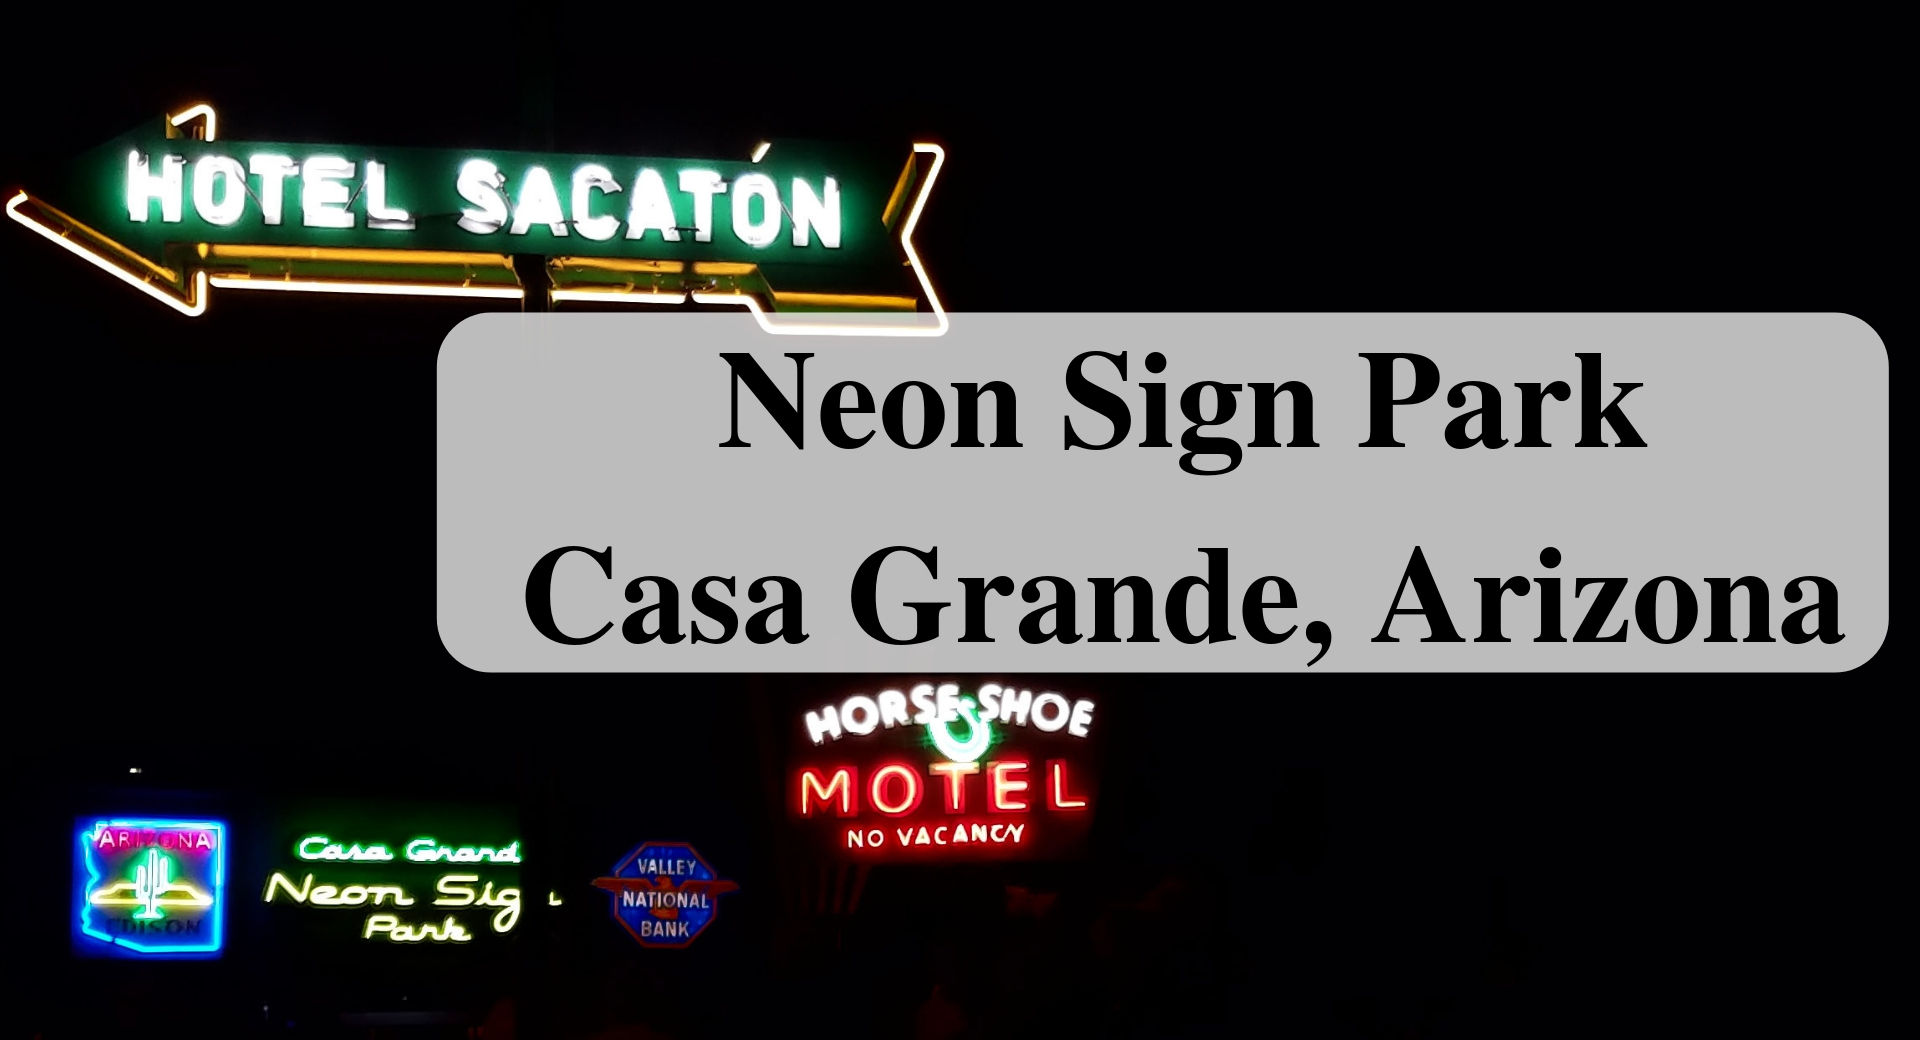 Visiting Neon Sign Park Casa Grande, Arizona Main Forever Sabbatical